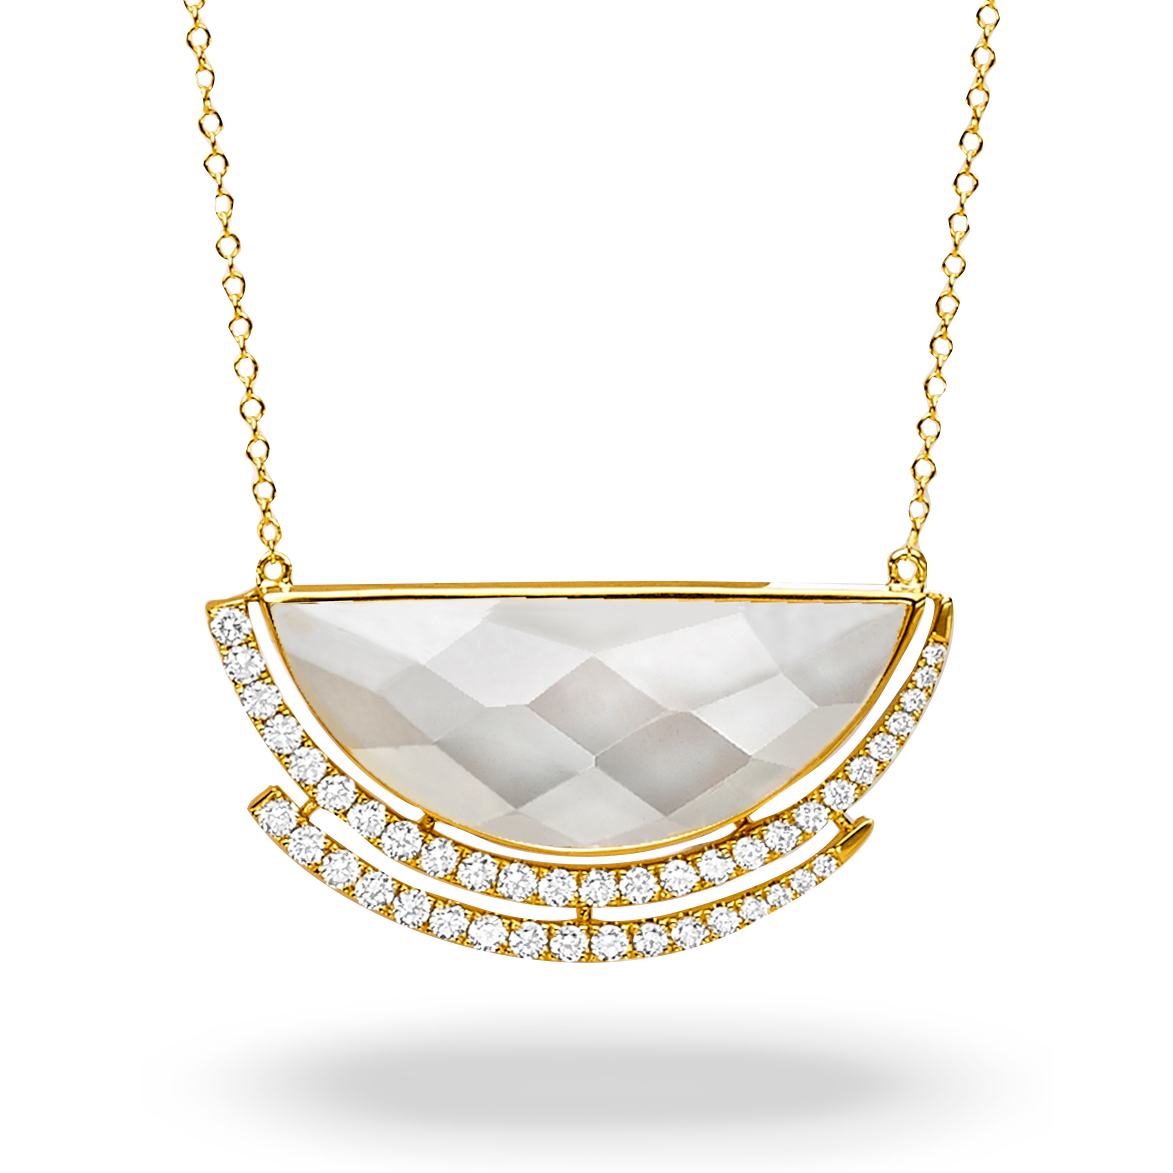 18K Diamond Gemstone Necklace - 18K Yellow Gold Diamond Necklace With Clear Quartz Over White Mother Of Pearl.